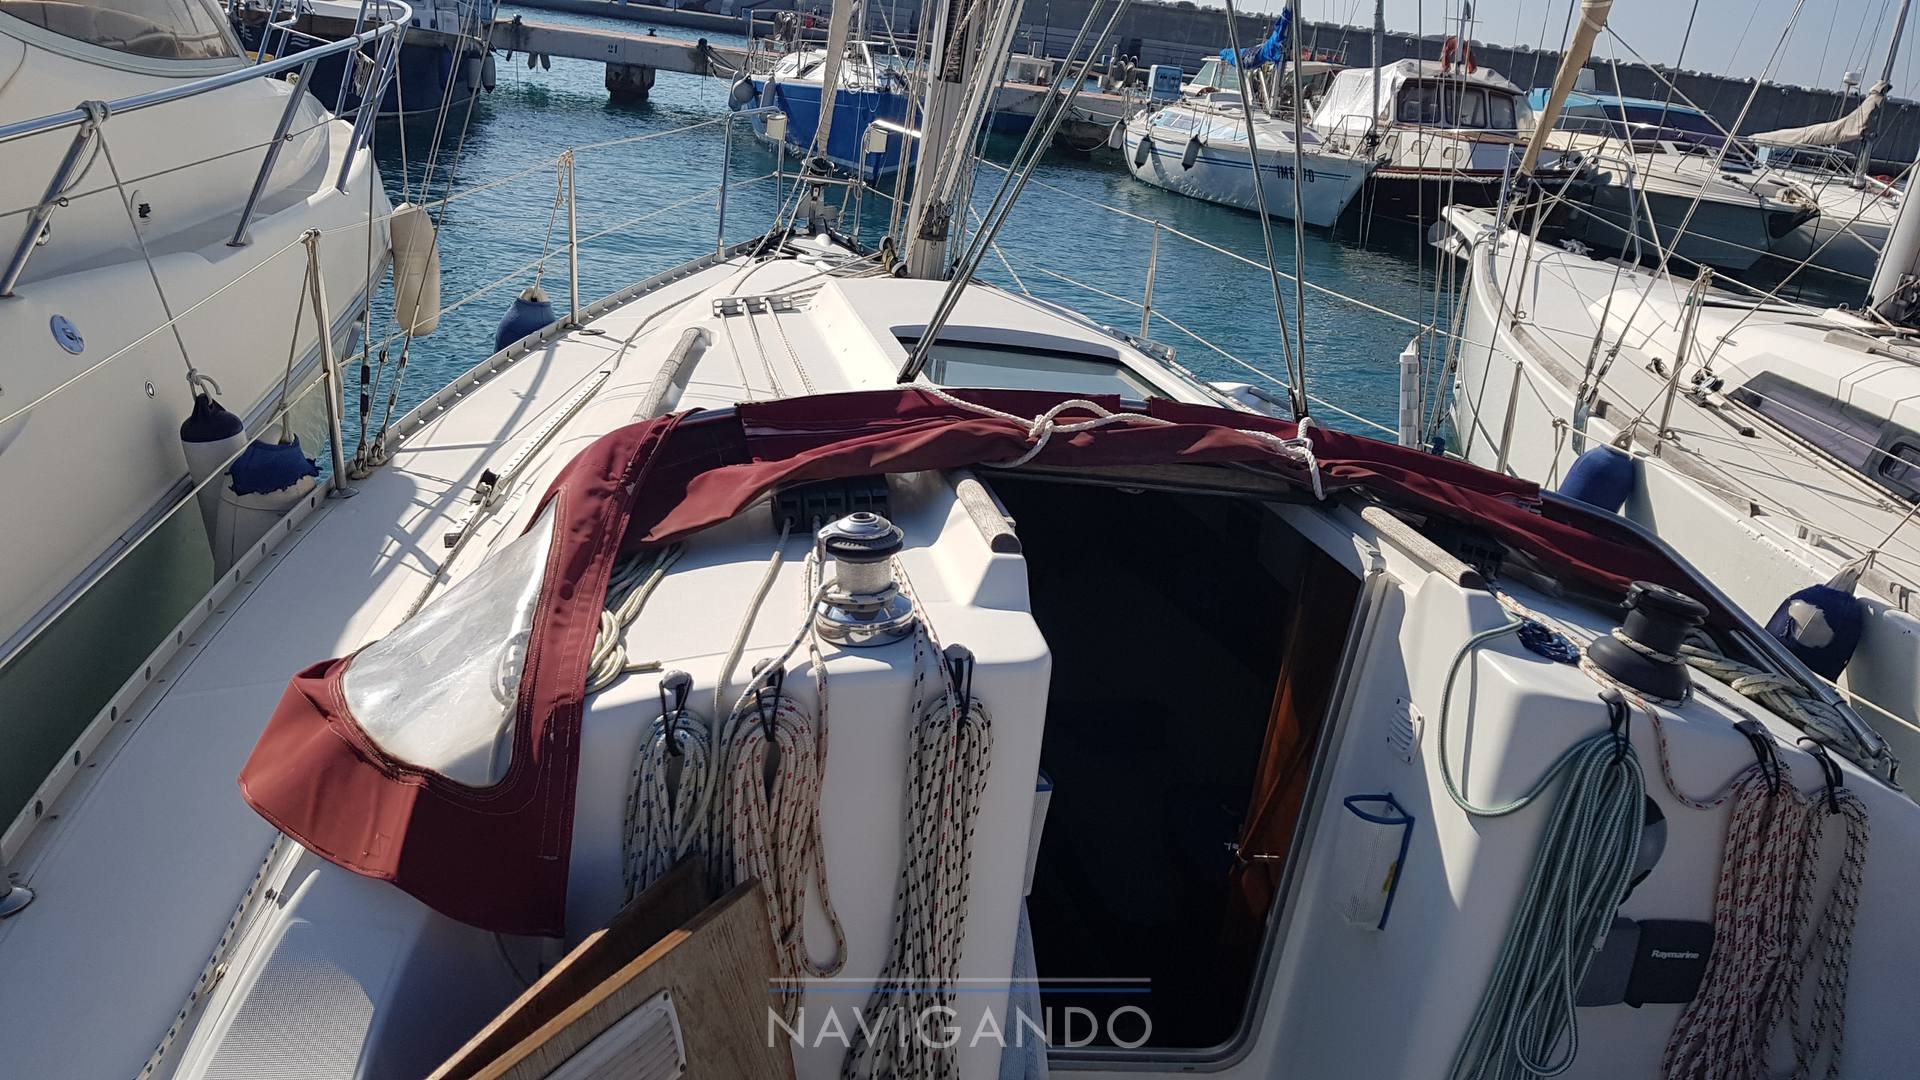 Beneteau Oceanis 311 Sailing boat used for sale